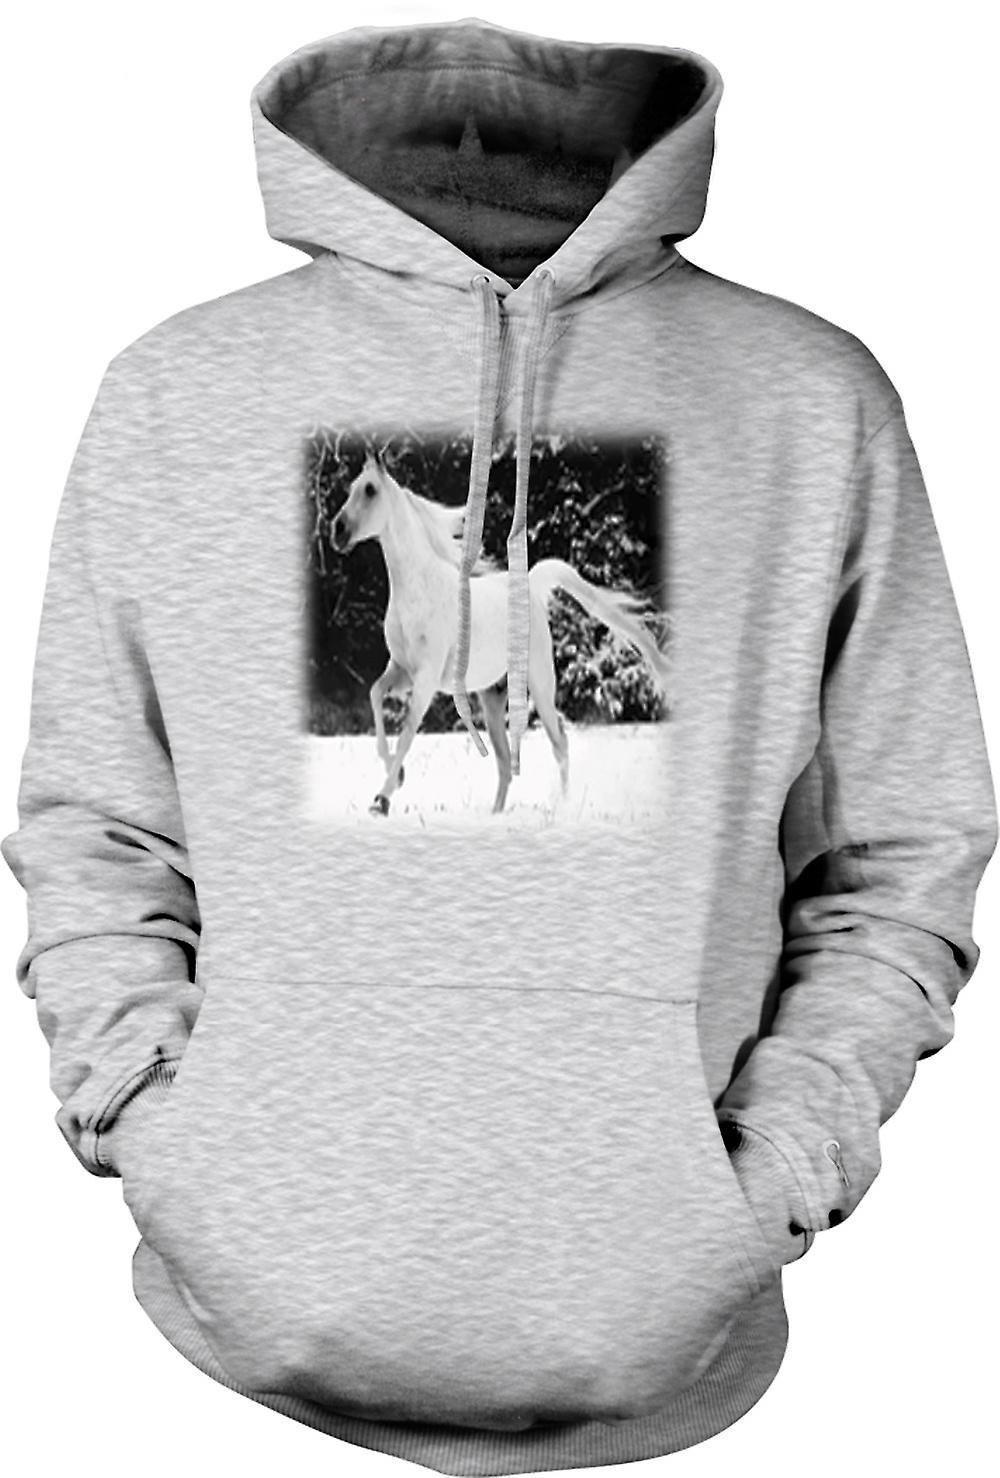 Mens Hoodie - & White Running Horse Design